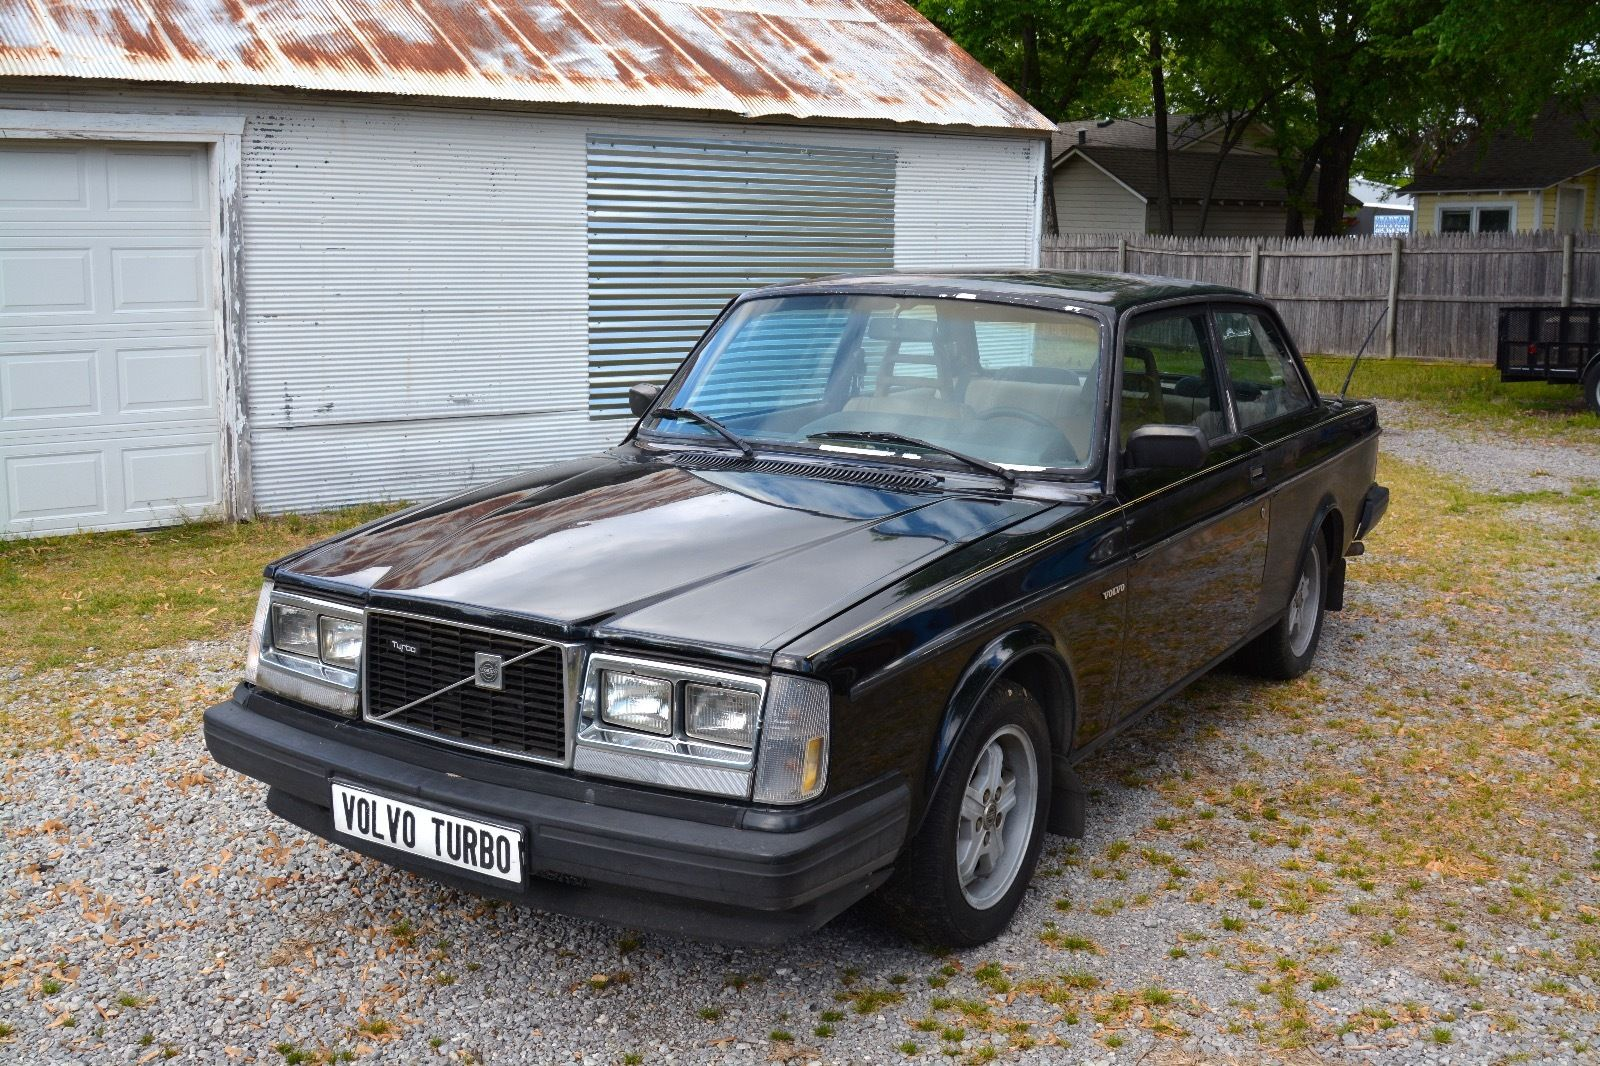 daily turismo boxy but good 1983 volvo 242 turbo 5 speed. Black Bedroom Furniture Sets. Home Design Ideas